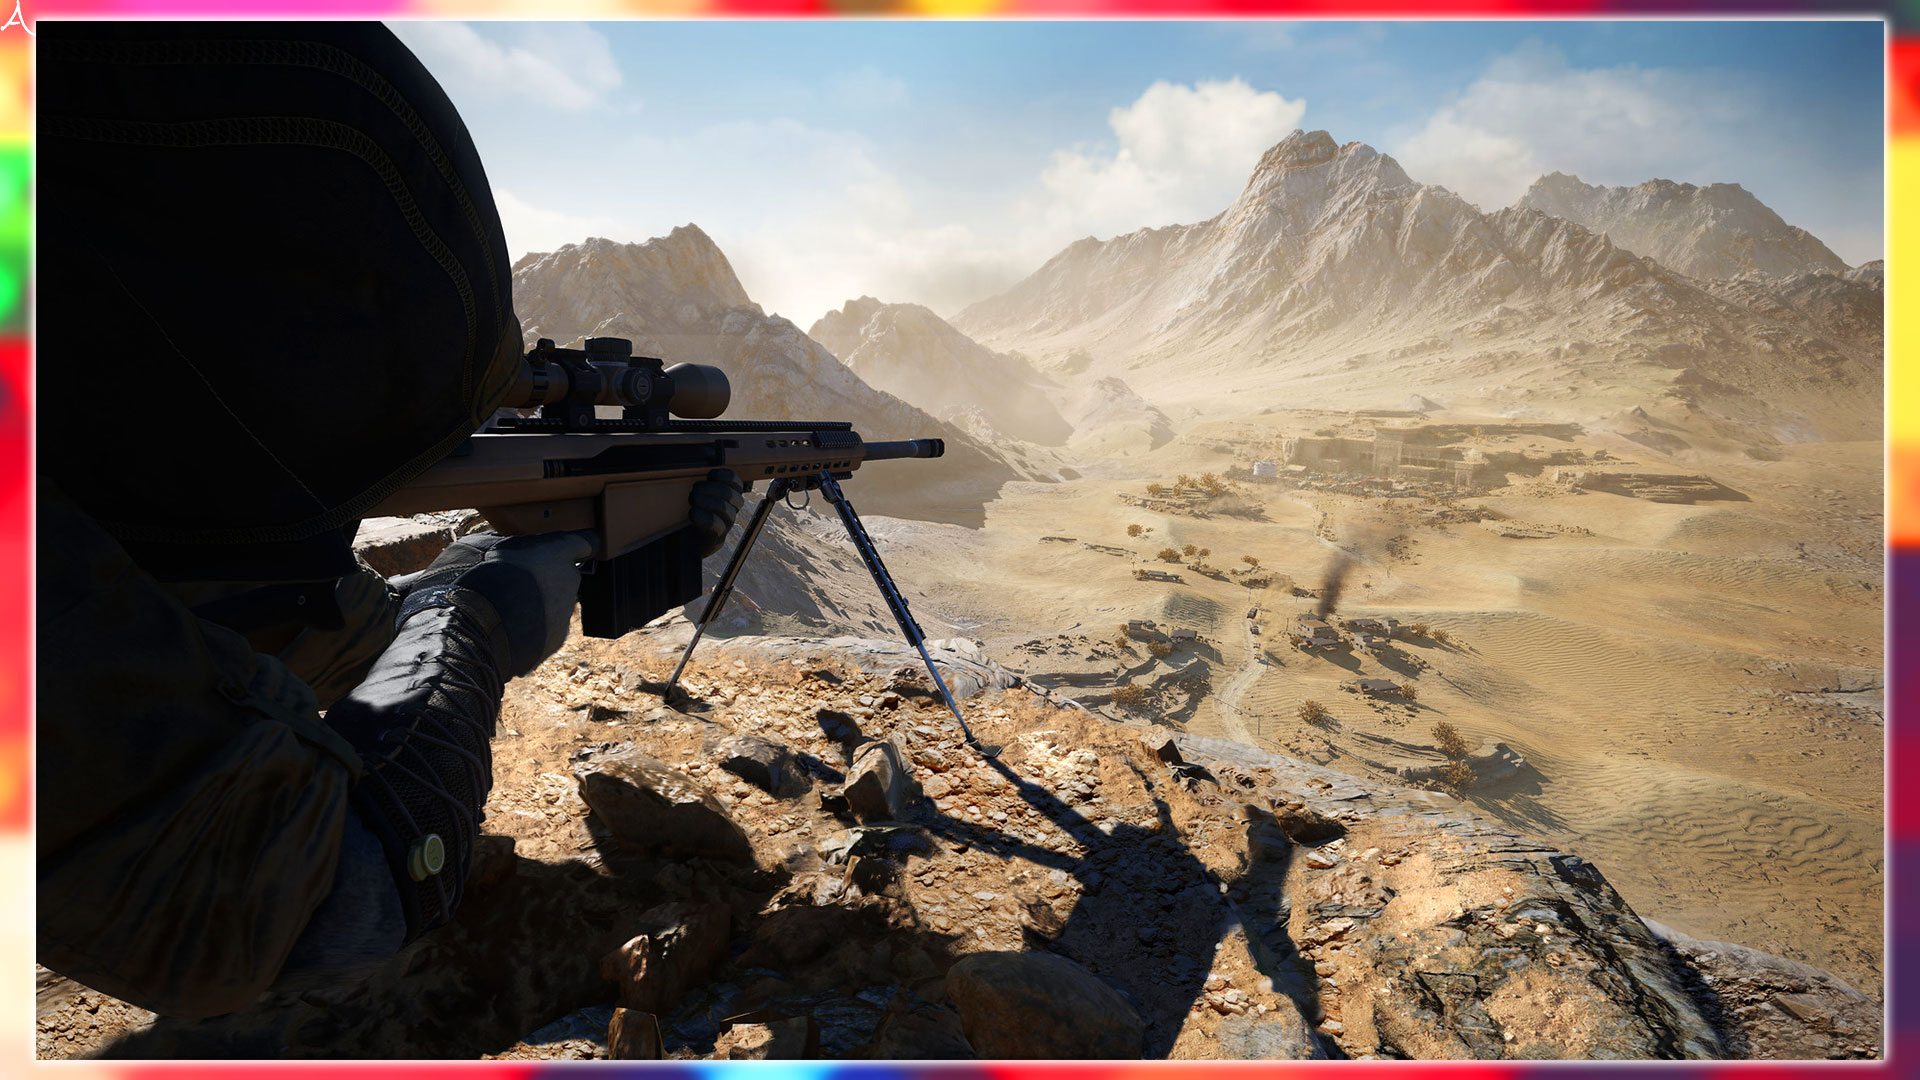 PC版「Sniper Ghost Warrior Contracts 2」に必要な最低/推奨スペックを確認